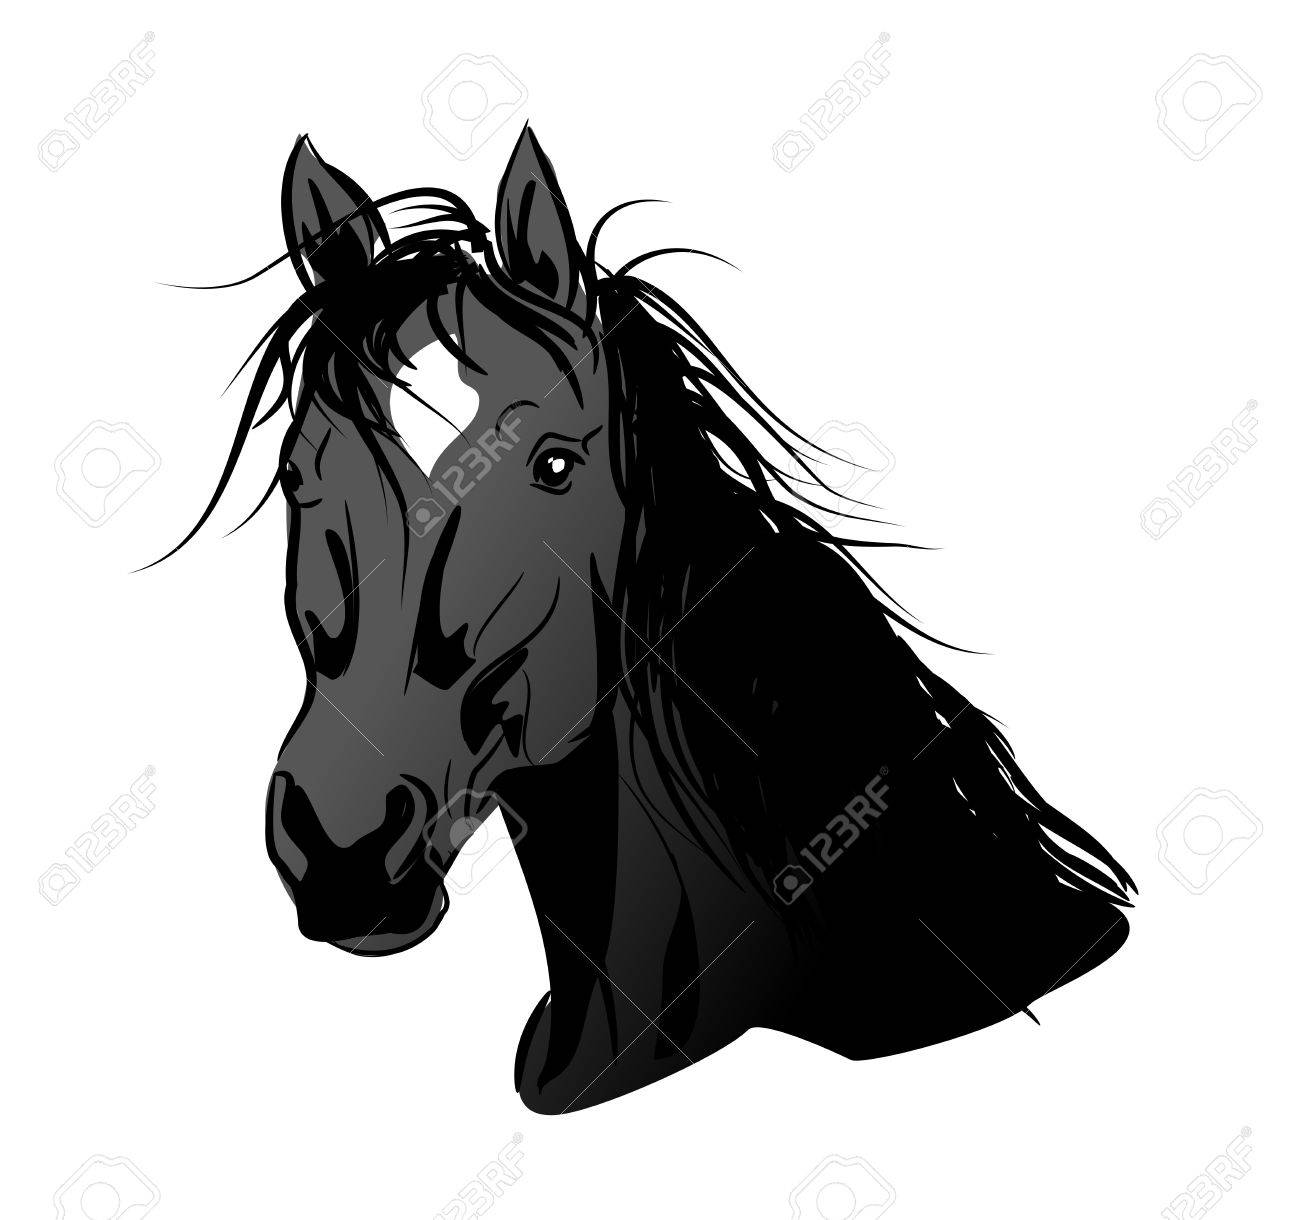 Illustration Of Black Horse Head With Long Mane Stock Photo Picture And Royalty Free Image Image 71158334